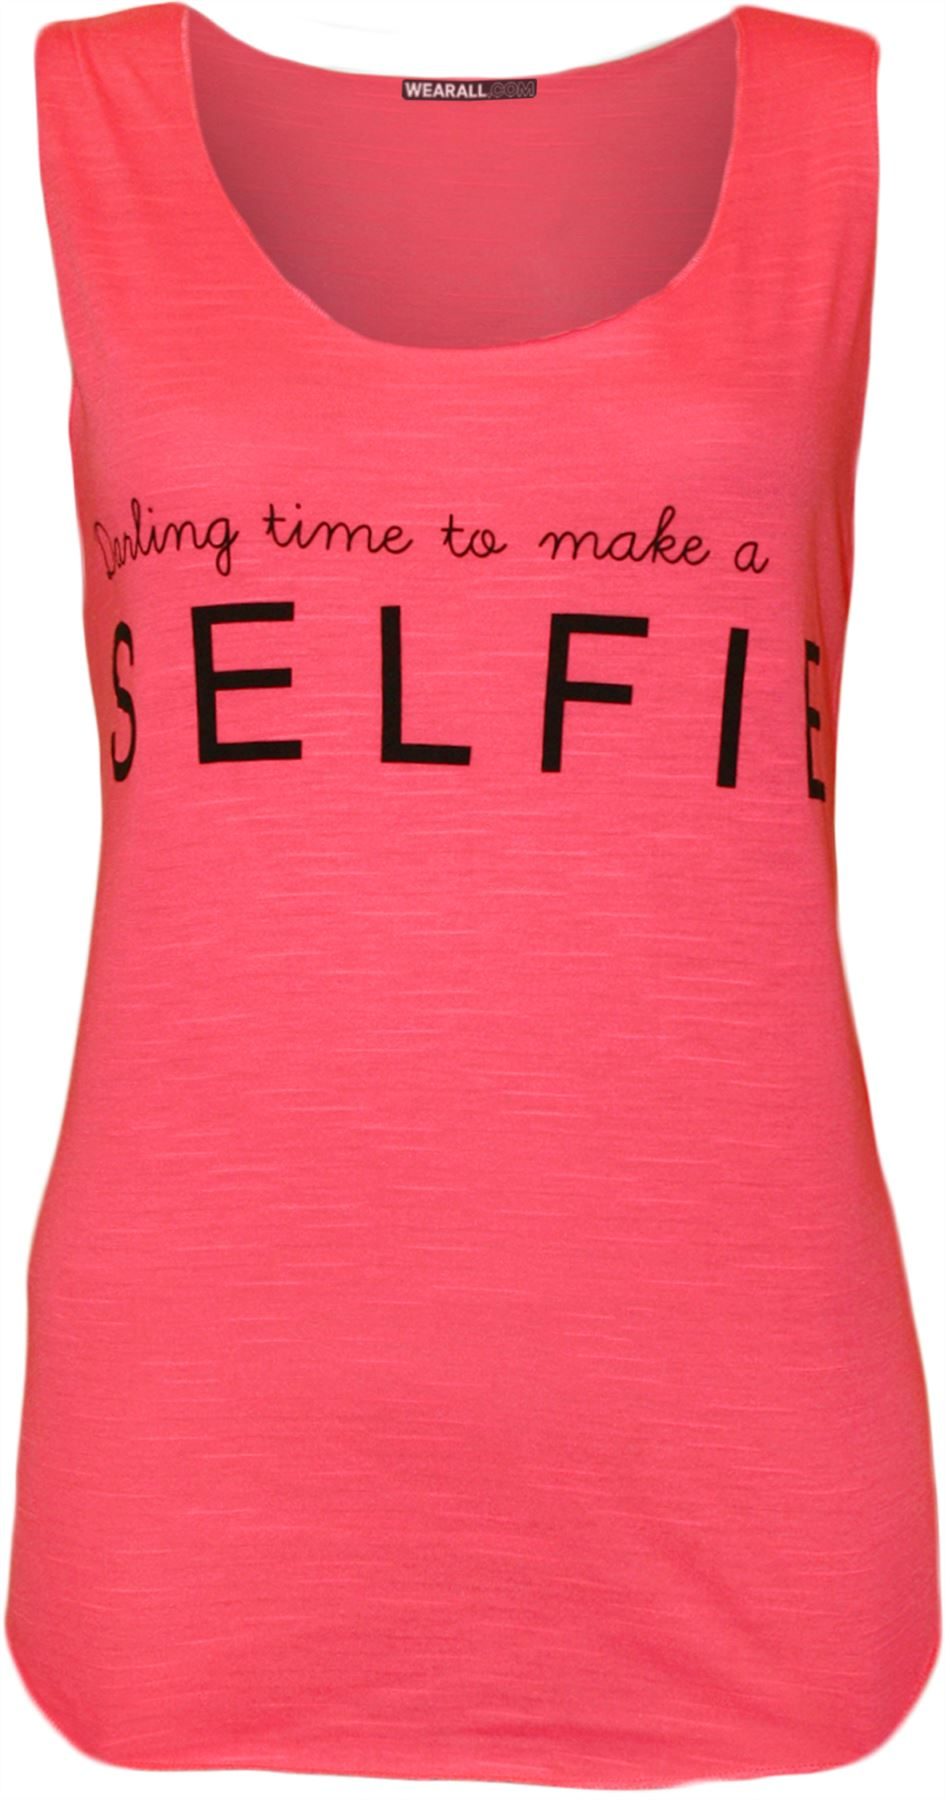 Womens Darling Time To Make A Selfie Text Print Ladies Sleeveless Vest Top 8-14